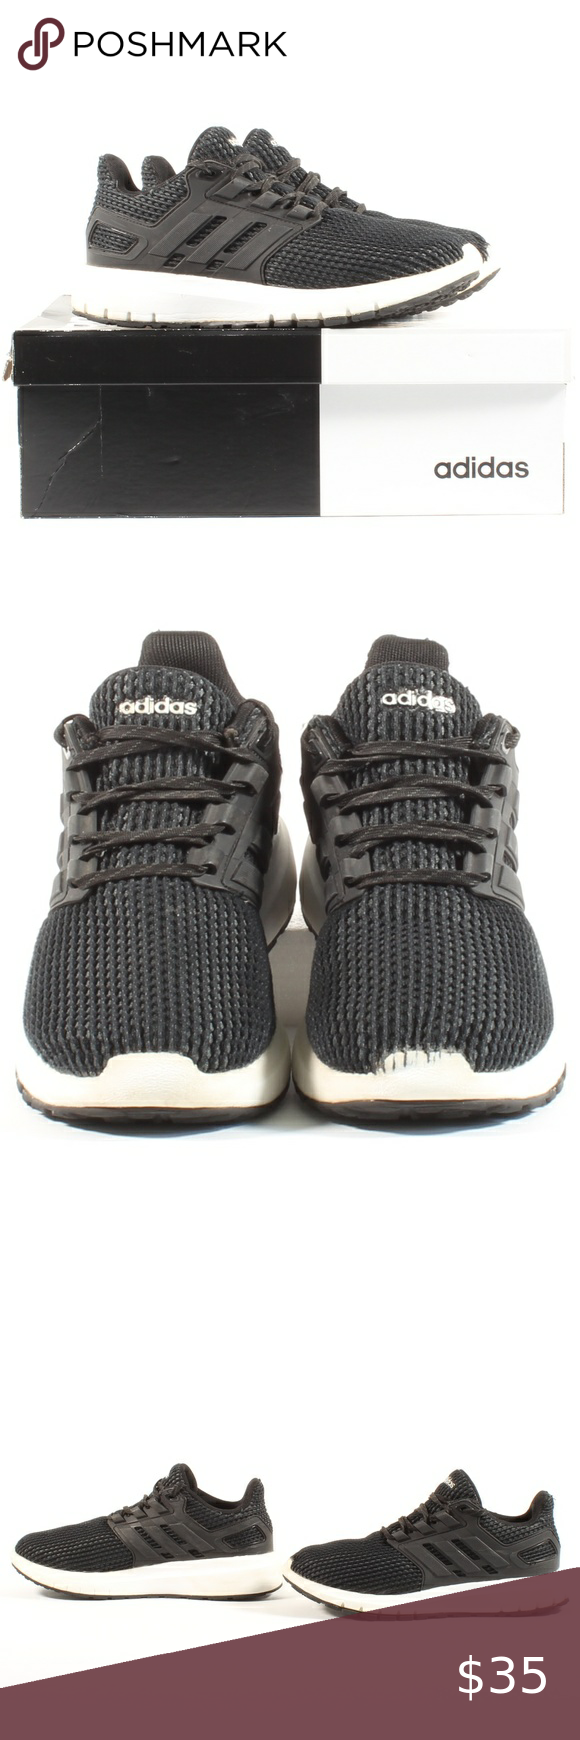 Adidas Mens Athletic Running Shoes Sneakers Size 8 | Running shoes ...